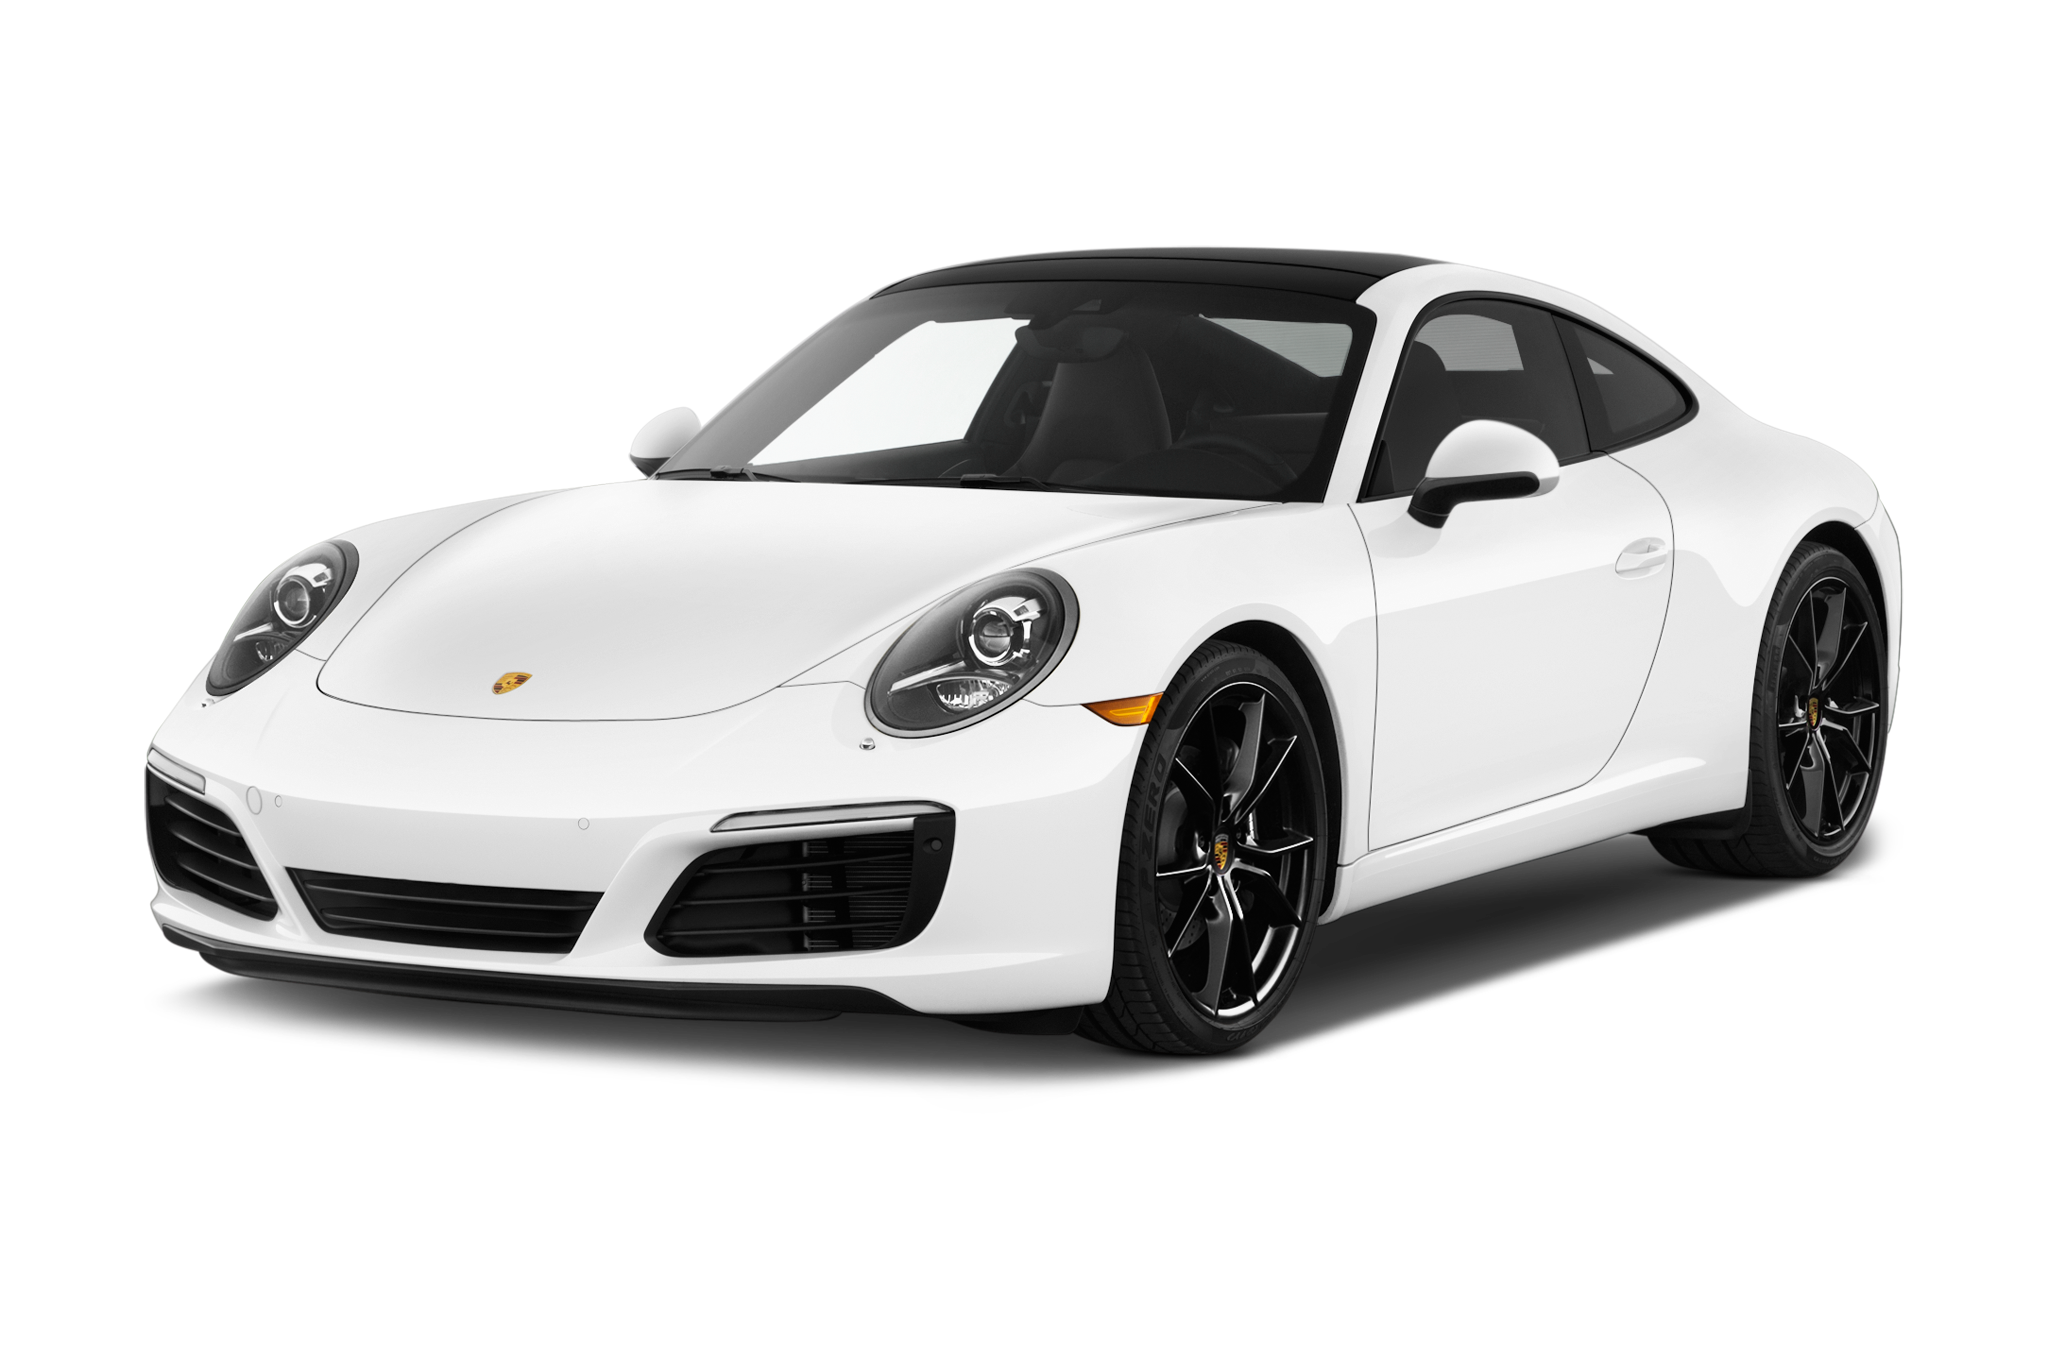 2017 porsche 911 carrera coupe engine, transmision, and 2019 porsche 911 carrera gts black porsche 911 engine stock photos